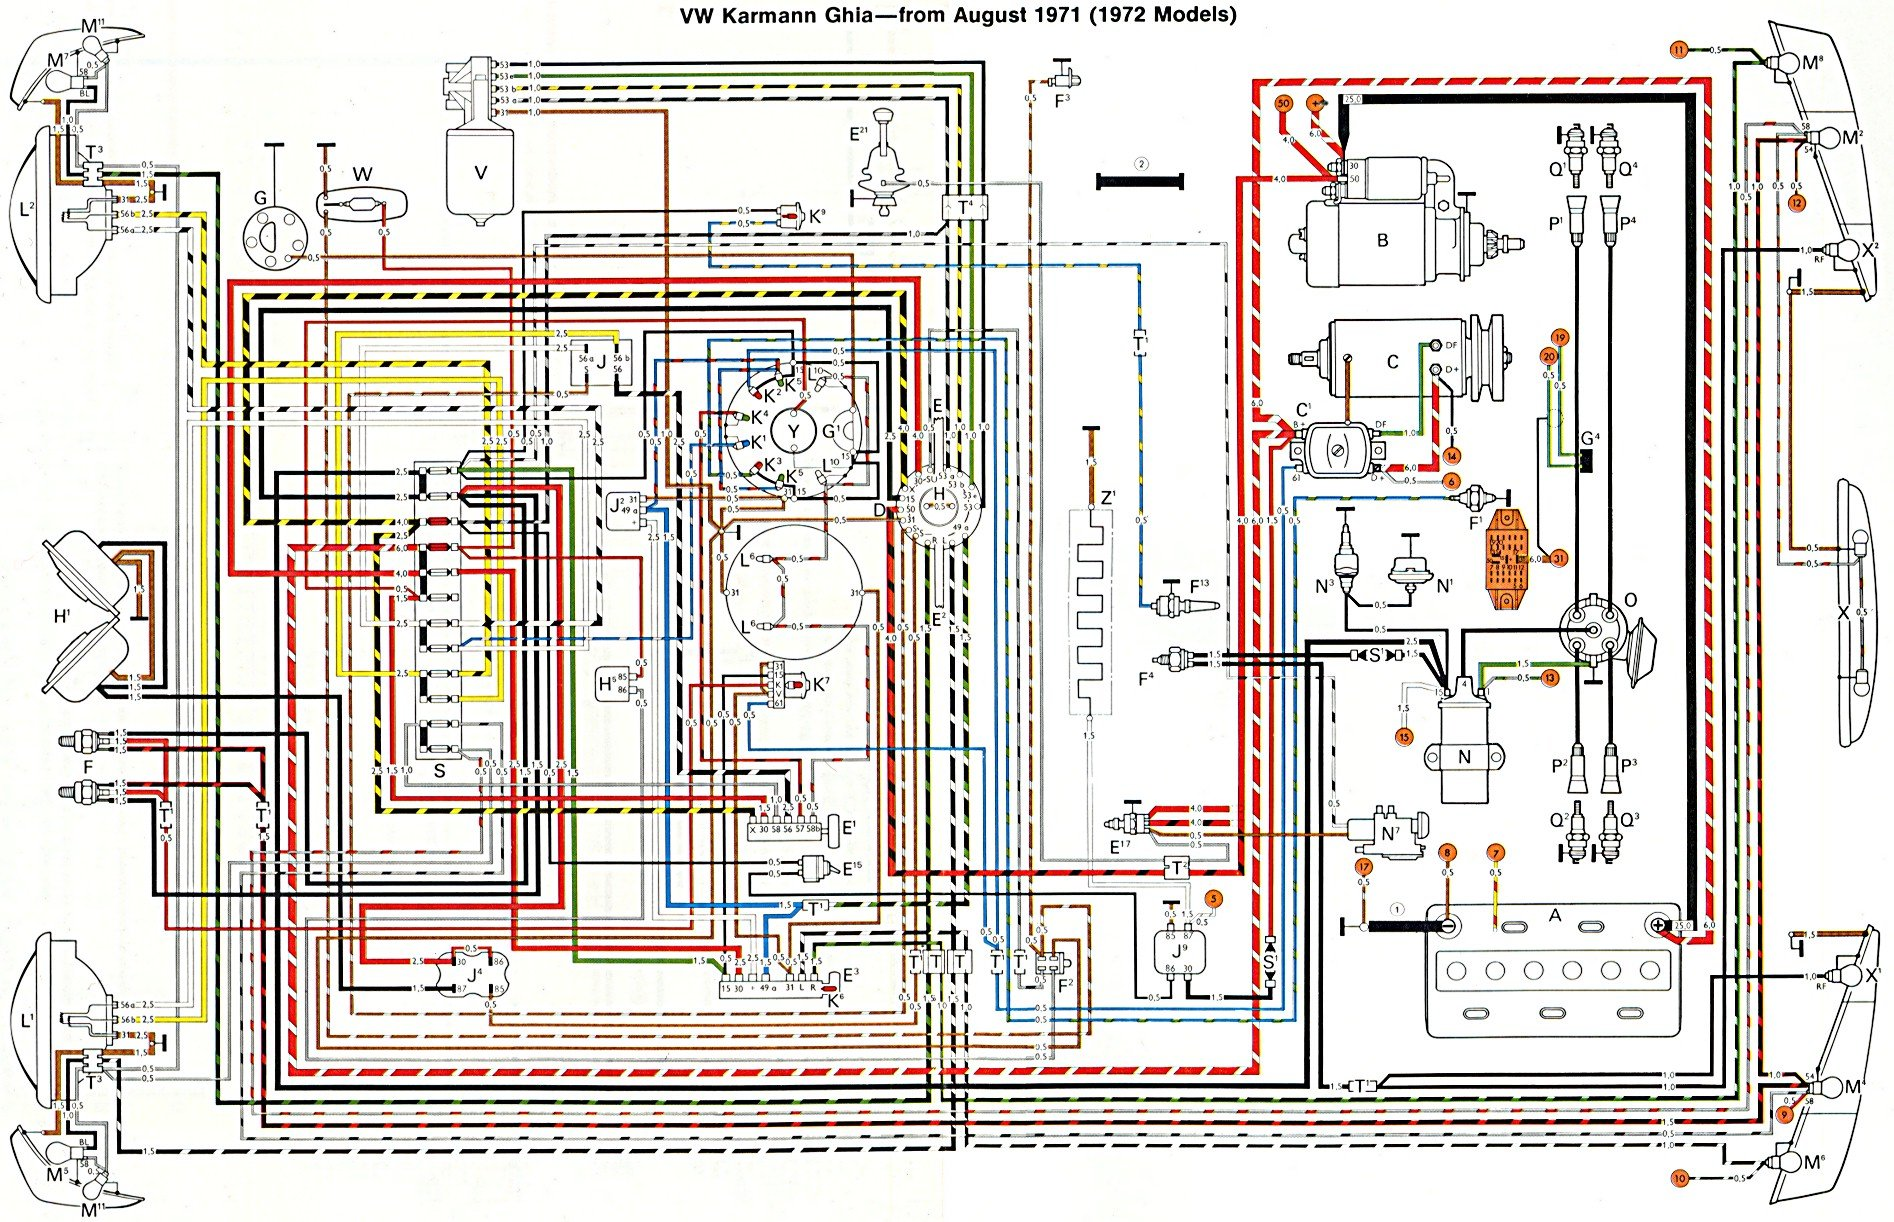 72ghia 74 super beetle wiring diagram 74 vw super beetle wiring diagram 1971 volkswagen super beetle wiring diagram at panicattacktreatment.co